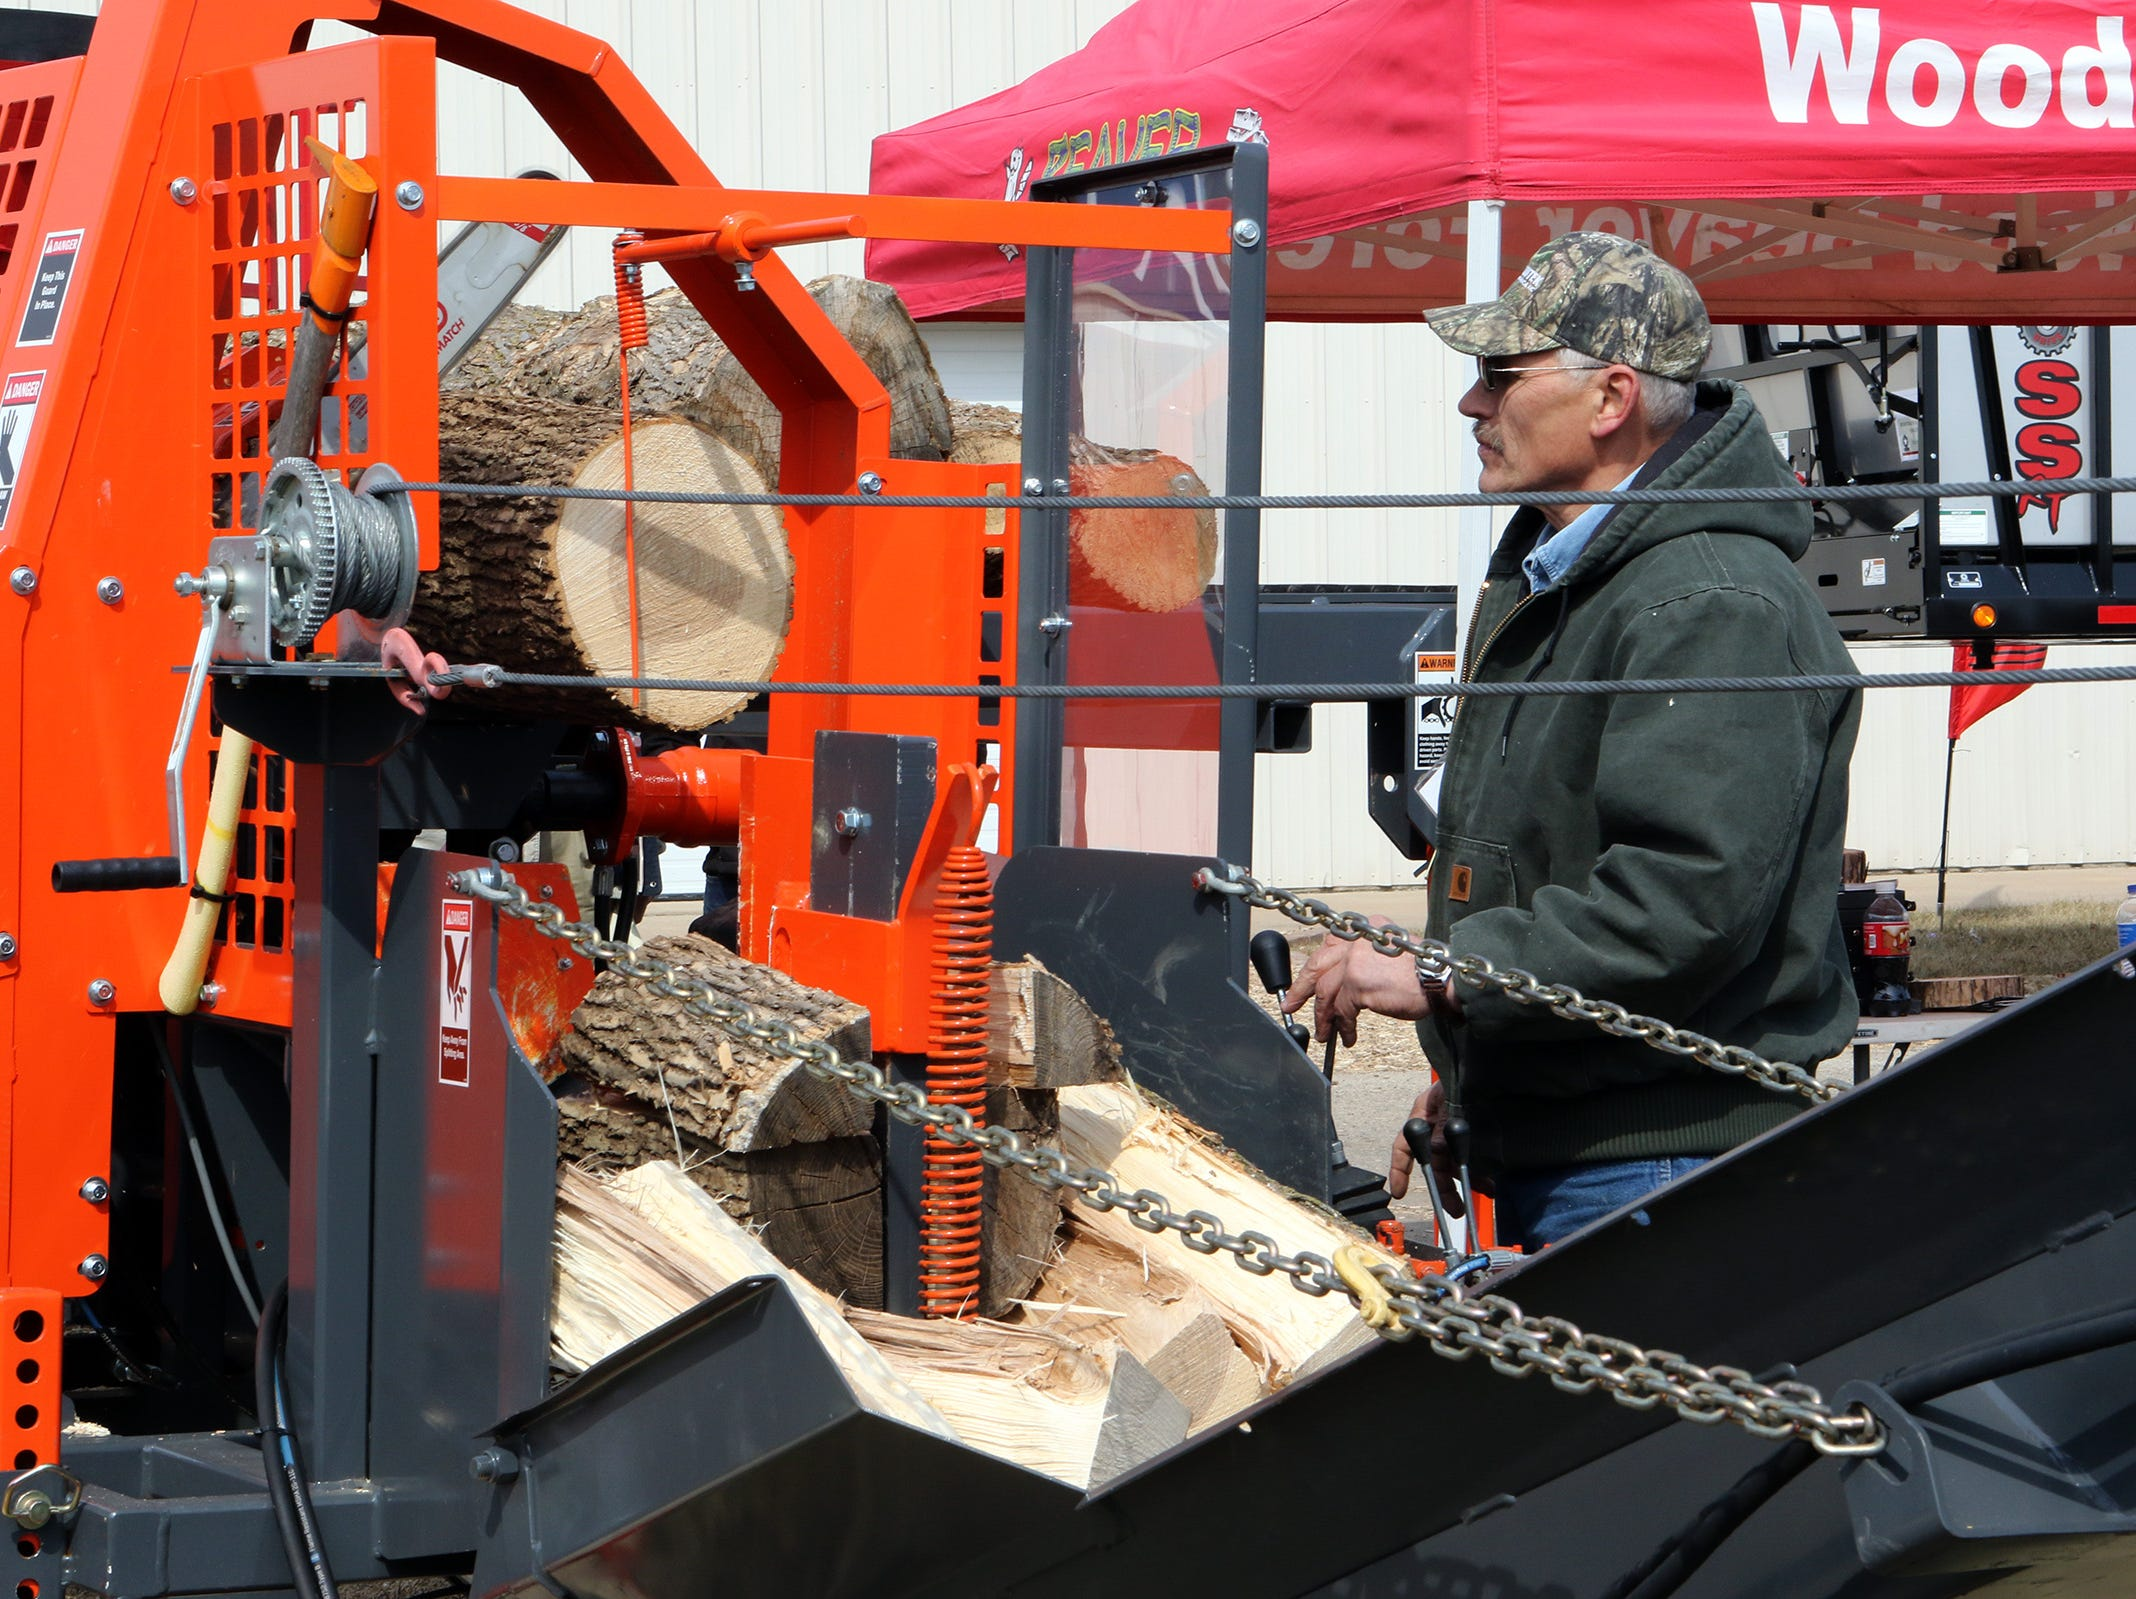 Dave Faytik, with Multitek, demonstrates how a firewood processor makes easy work of cutting and splitting wood during the Wisconsin Public Service Farm Show on March 27 in Oshkosh.